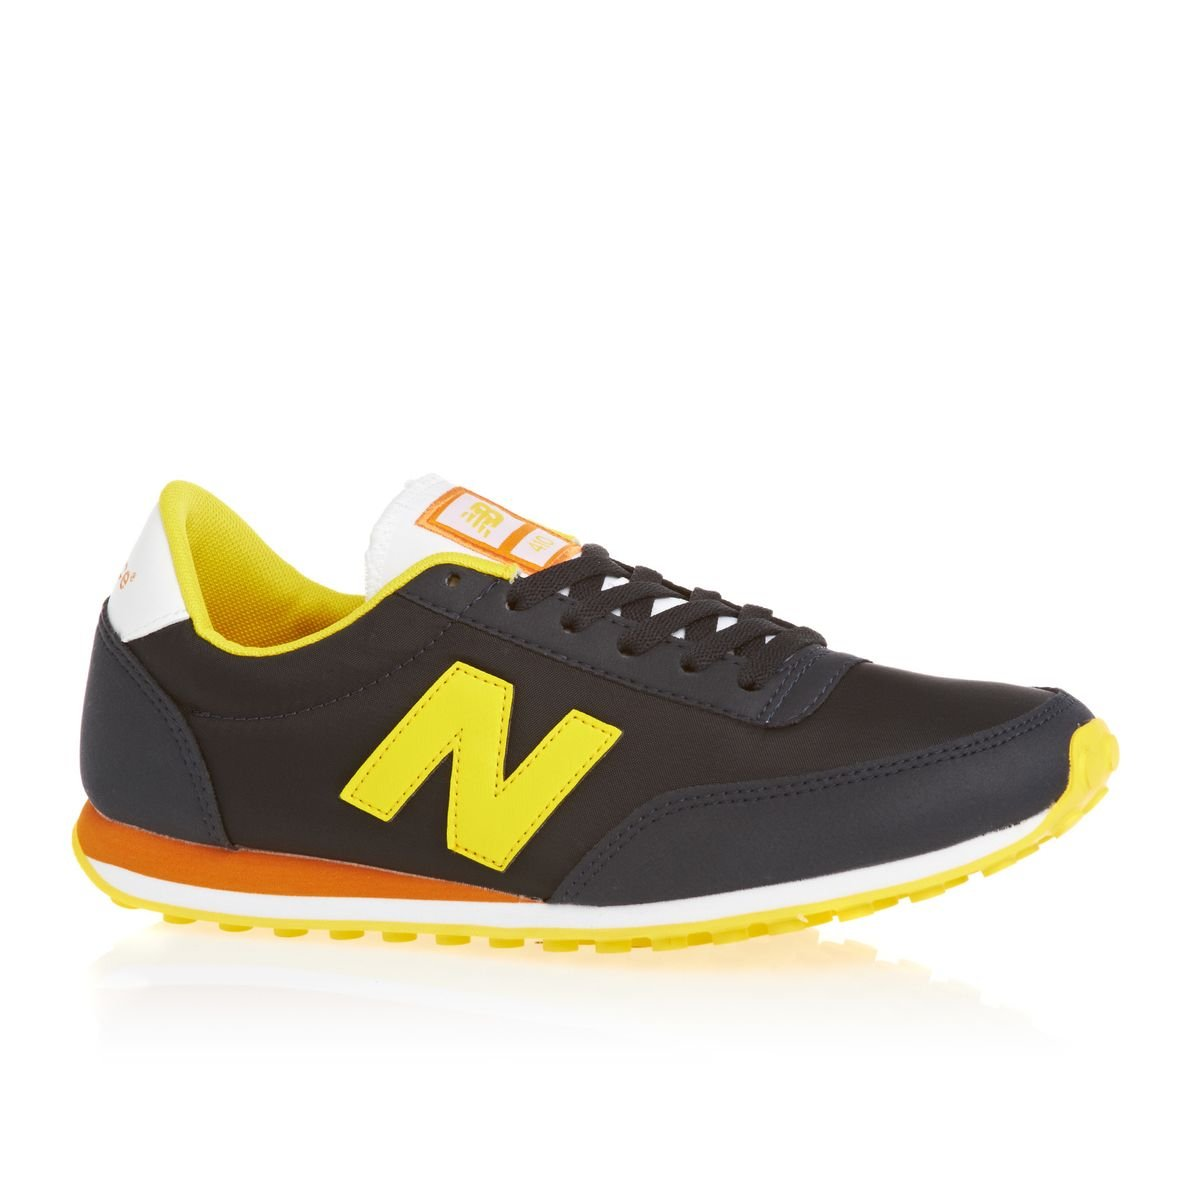 plus récent 48650 6d9ef New Balance U410, Men's trainers